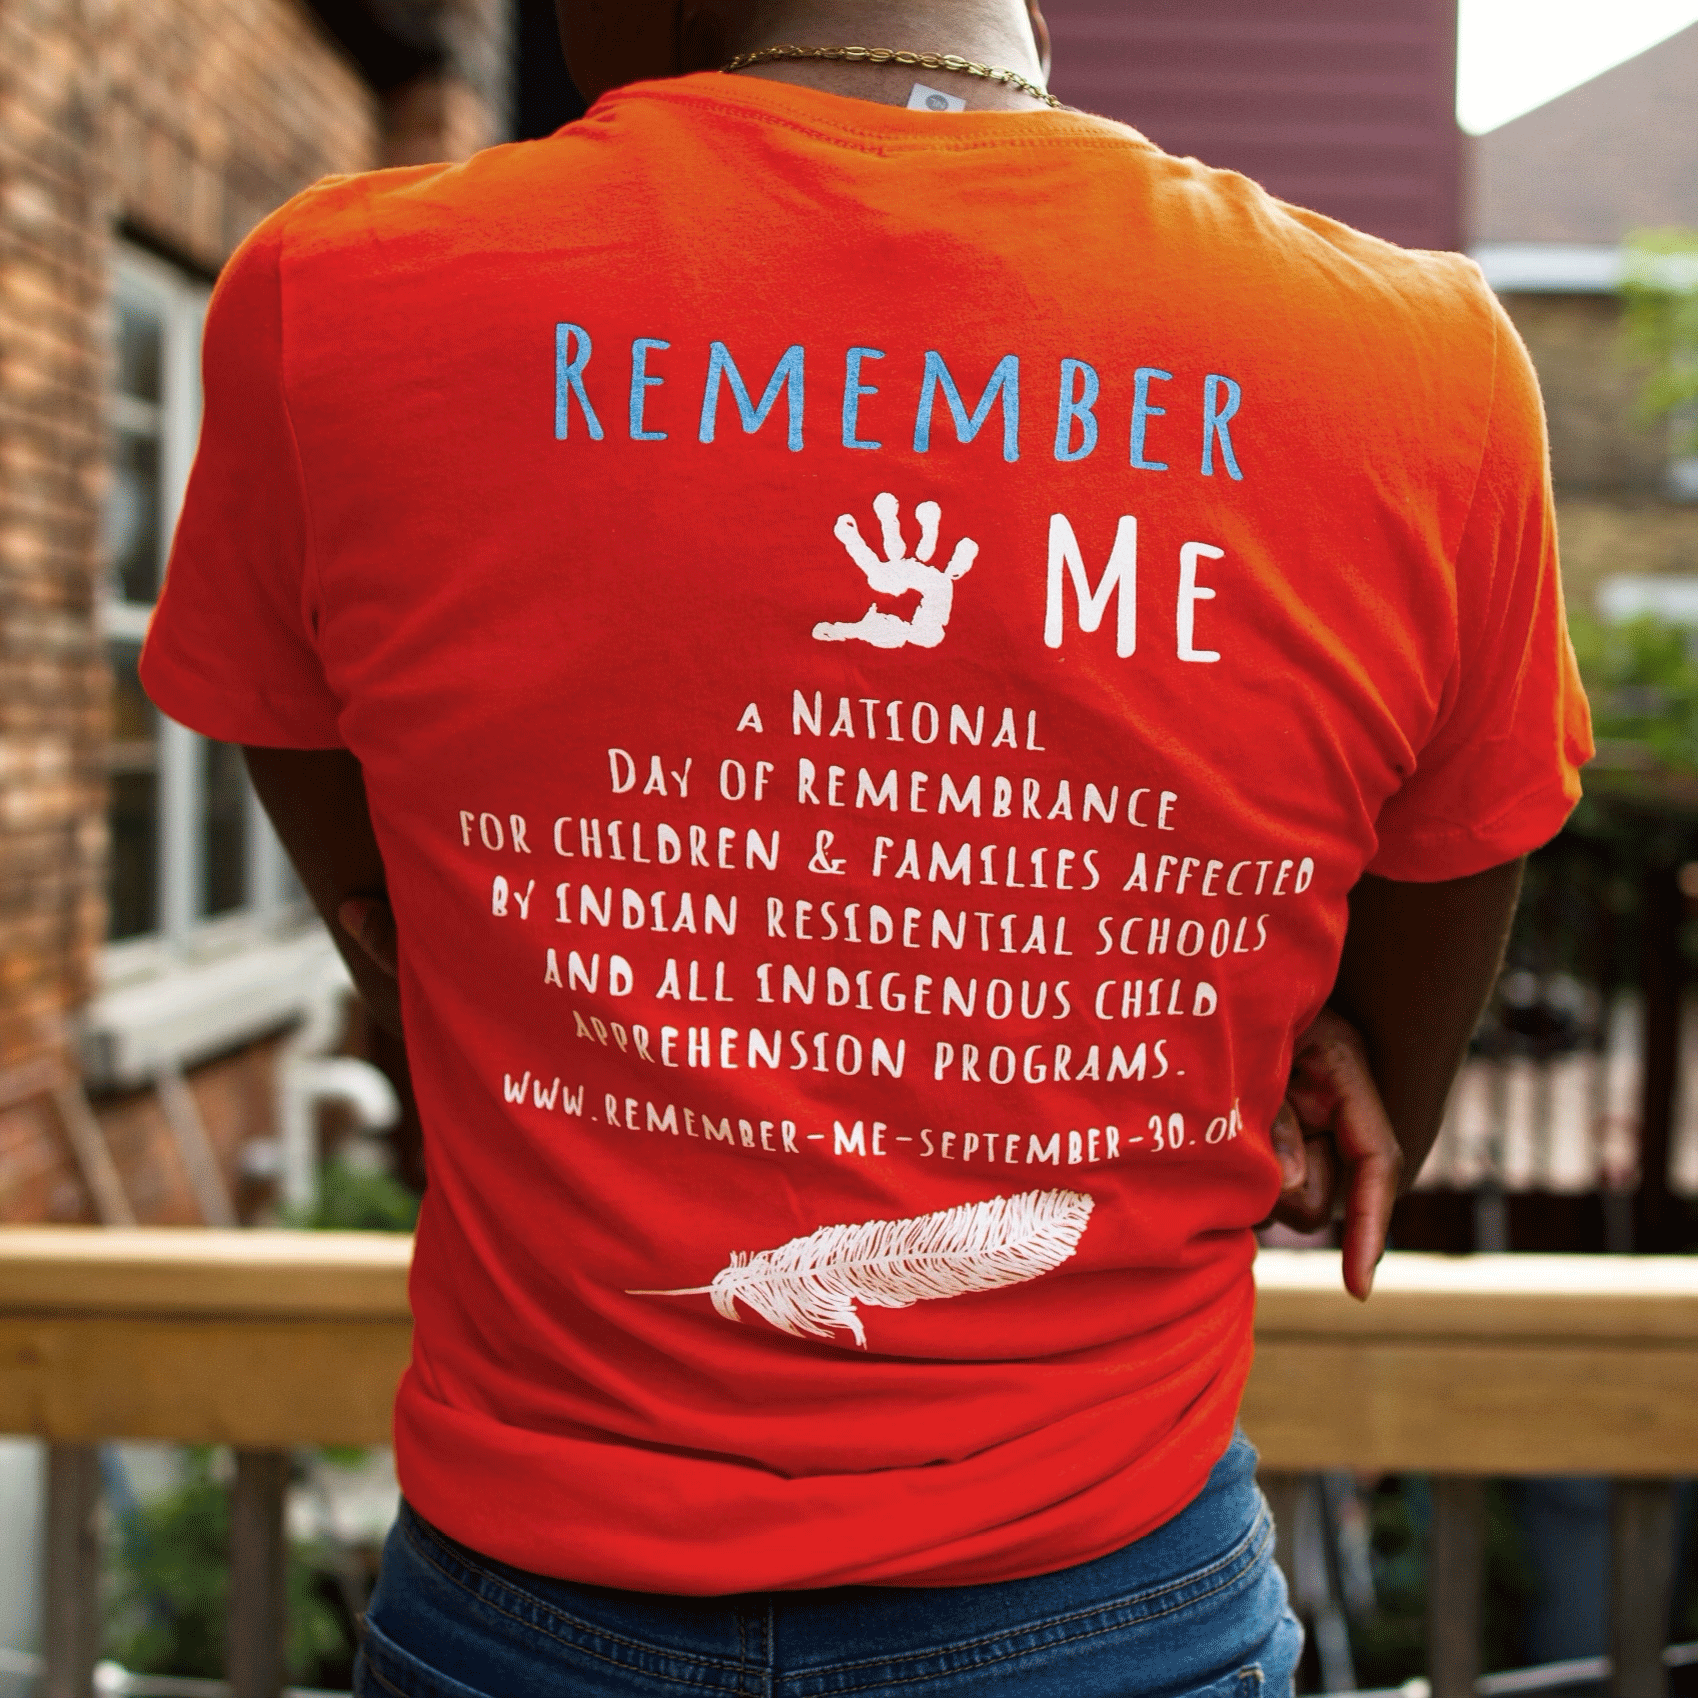 remember me, september 30, orange shirt day, ottawa, pass the feather, indigenous arts collective of canada, residential school, graves, remembrance day, sixties scoop,truth and reconciliation